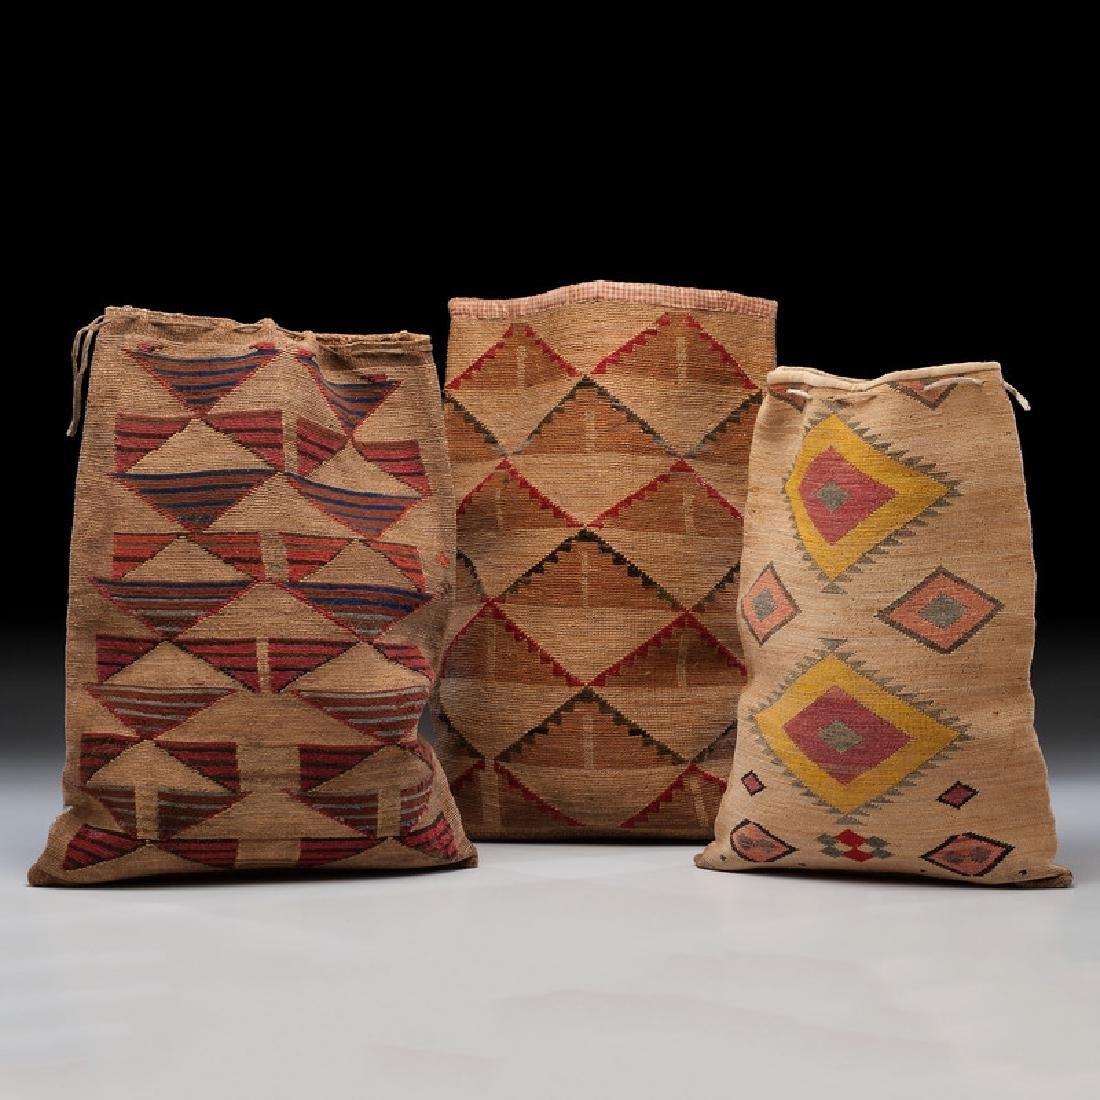 Nez Perce Corn Husk Flat Bags, From the Collection of